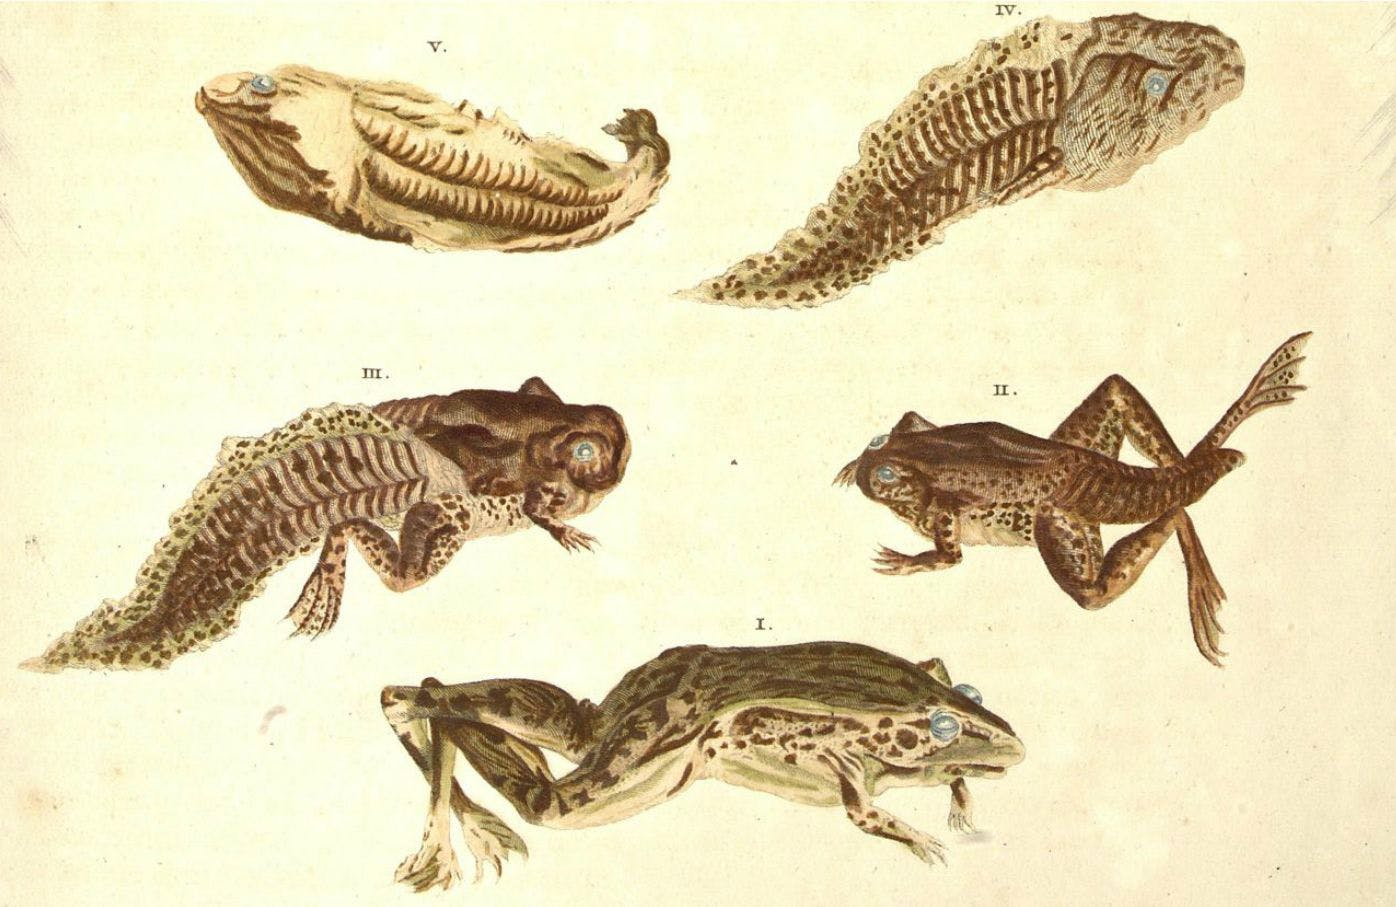 Frog life cycle from Metamorphosis insectorum Surinamensium